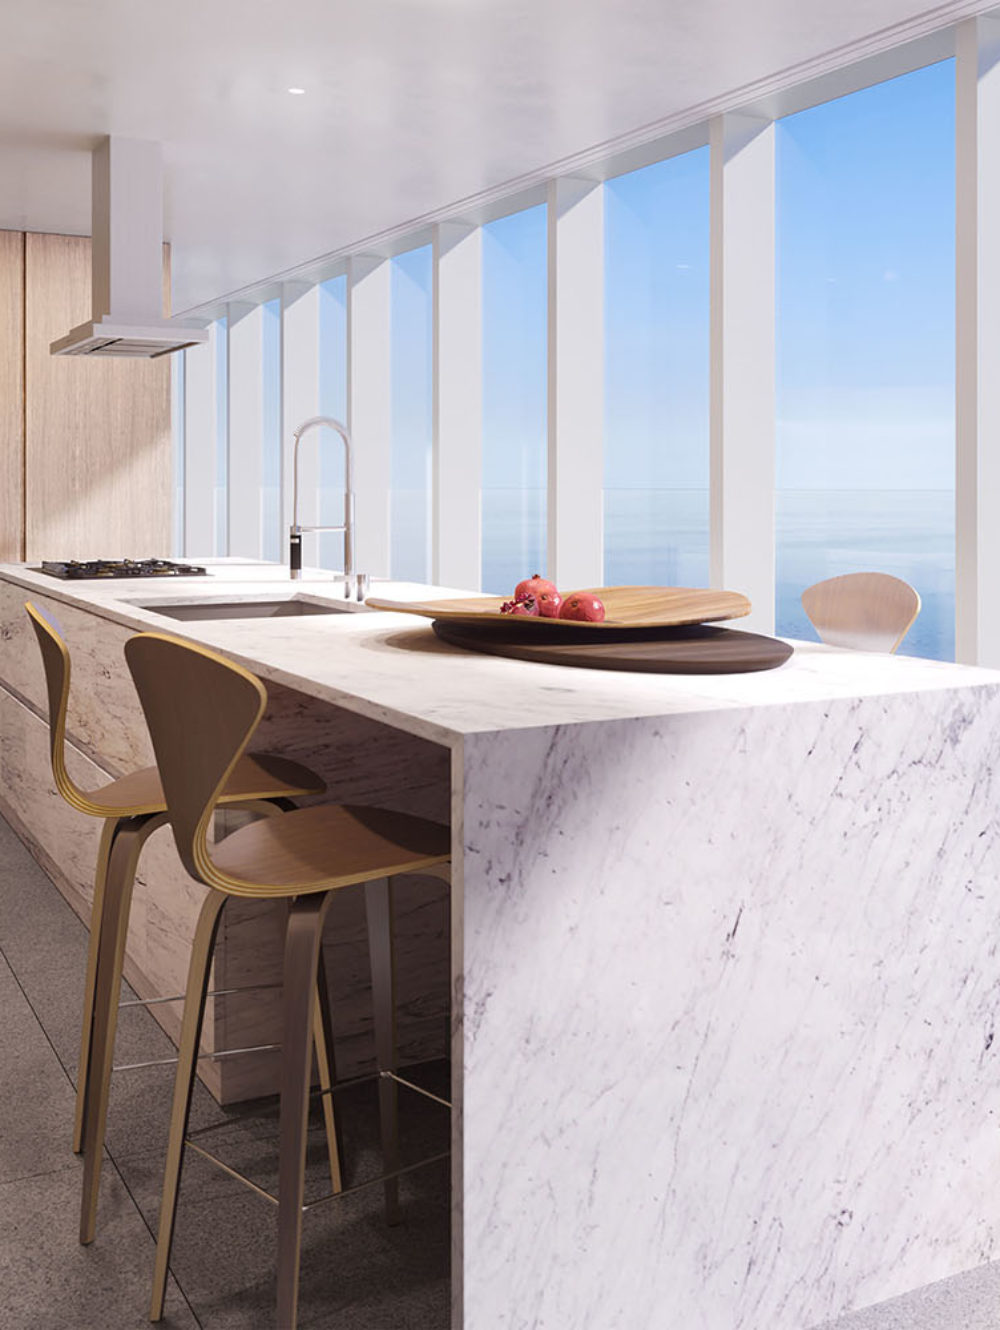 Interior view of 2000 Ocean residence kitchen located in Miami. Includes window view of the ocean and white furniture.